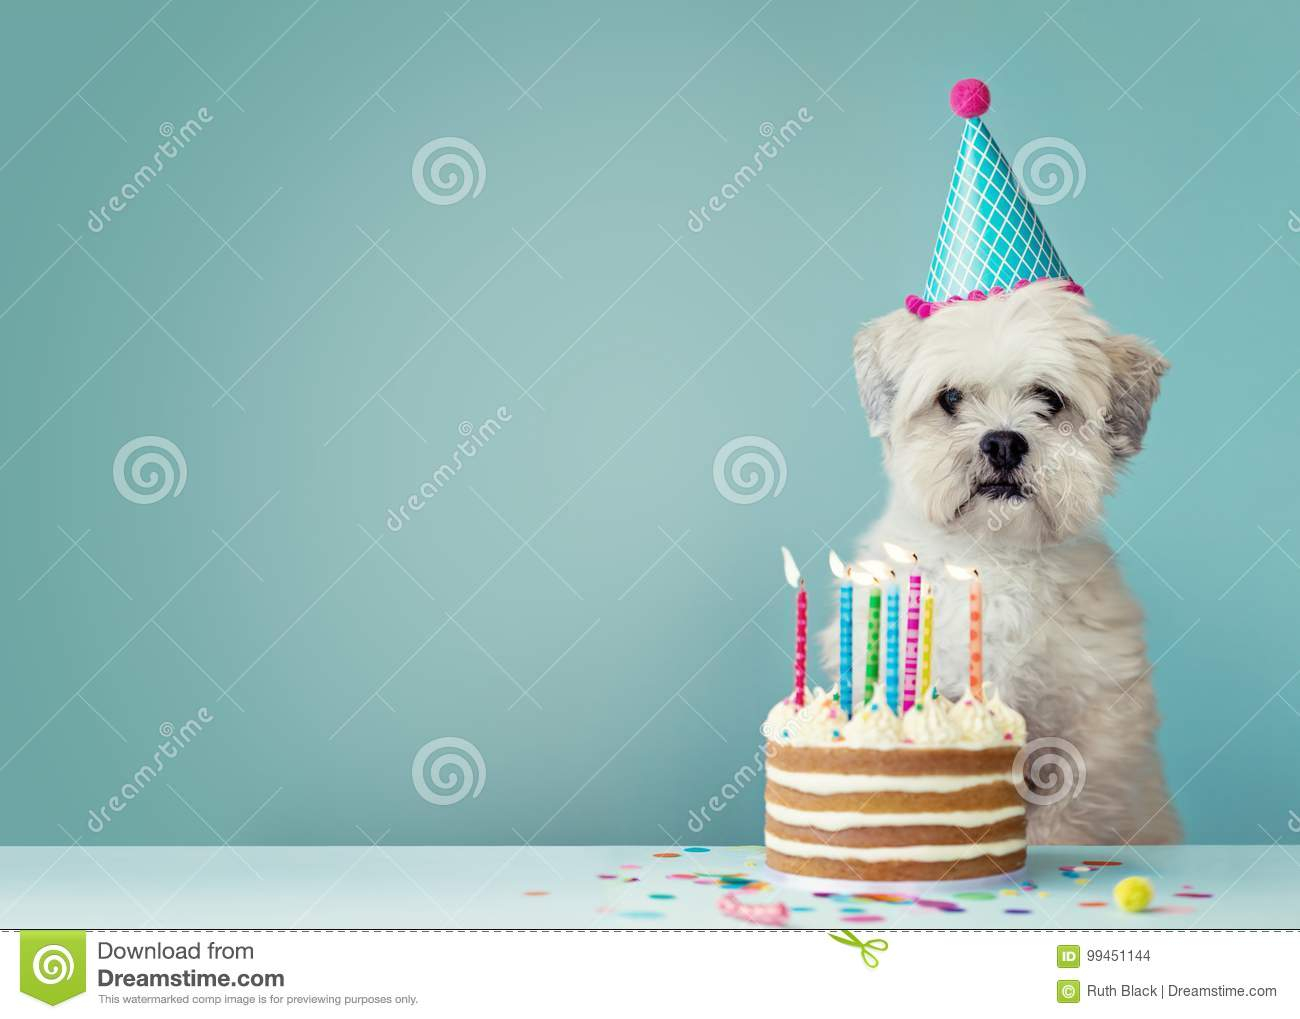 Birthday Cake Pic Download Birthday Cake Stock Images Download 142966 Photos